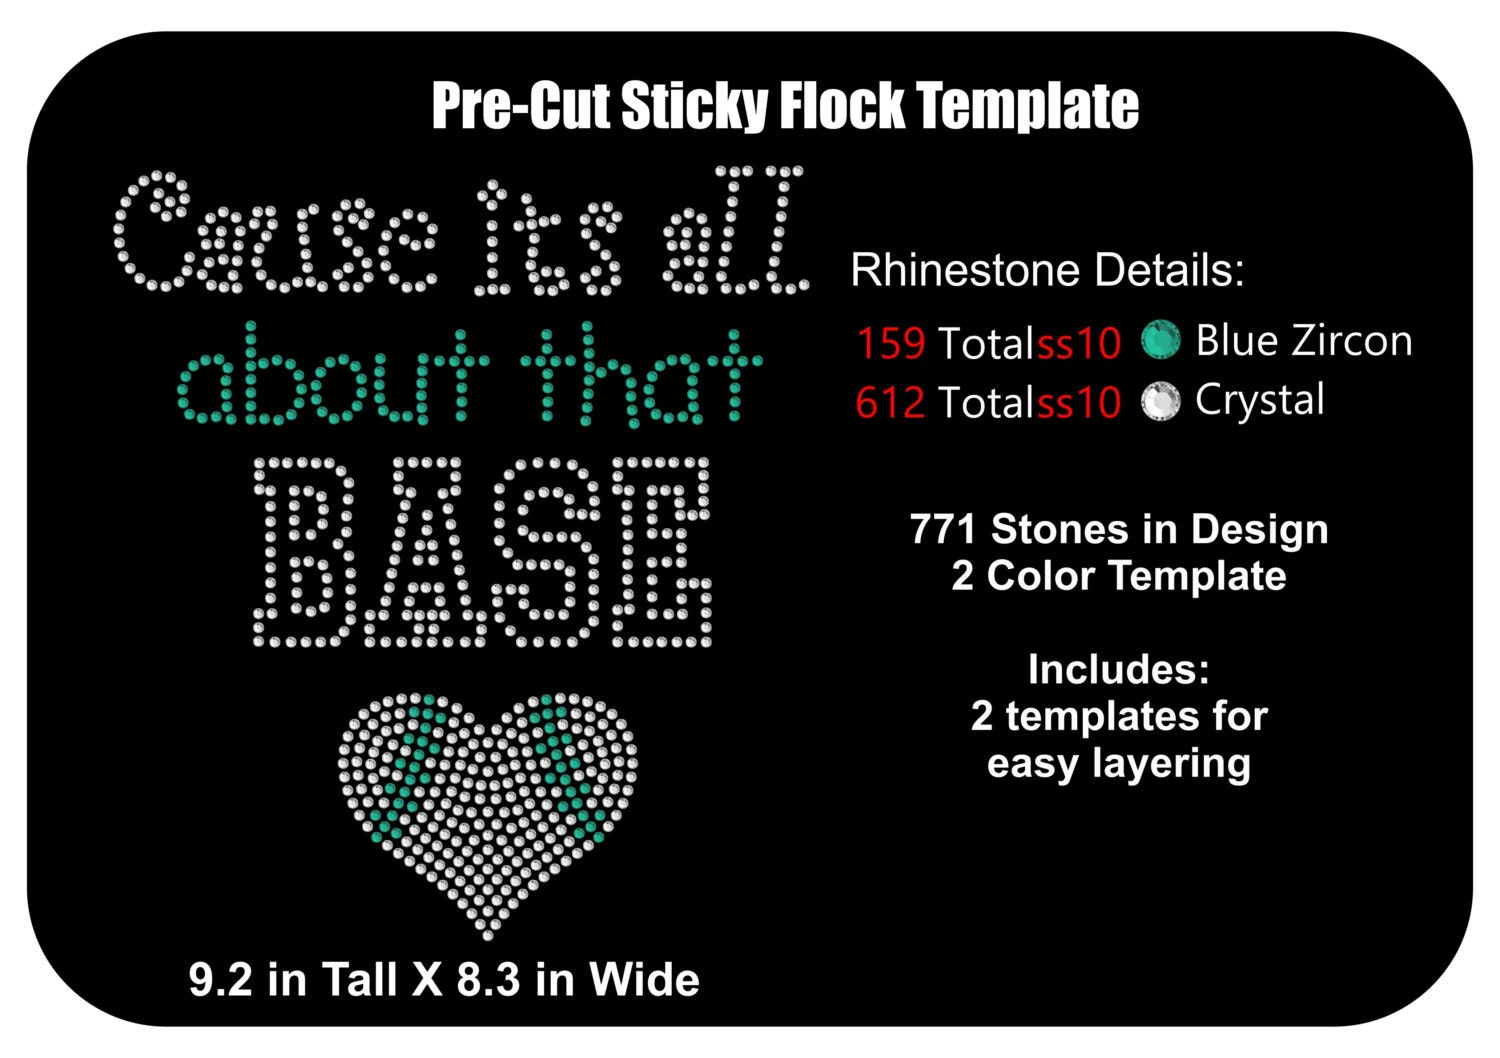 pre cut sticky flock templates - pre cut rhinestone flock template baseball all about that